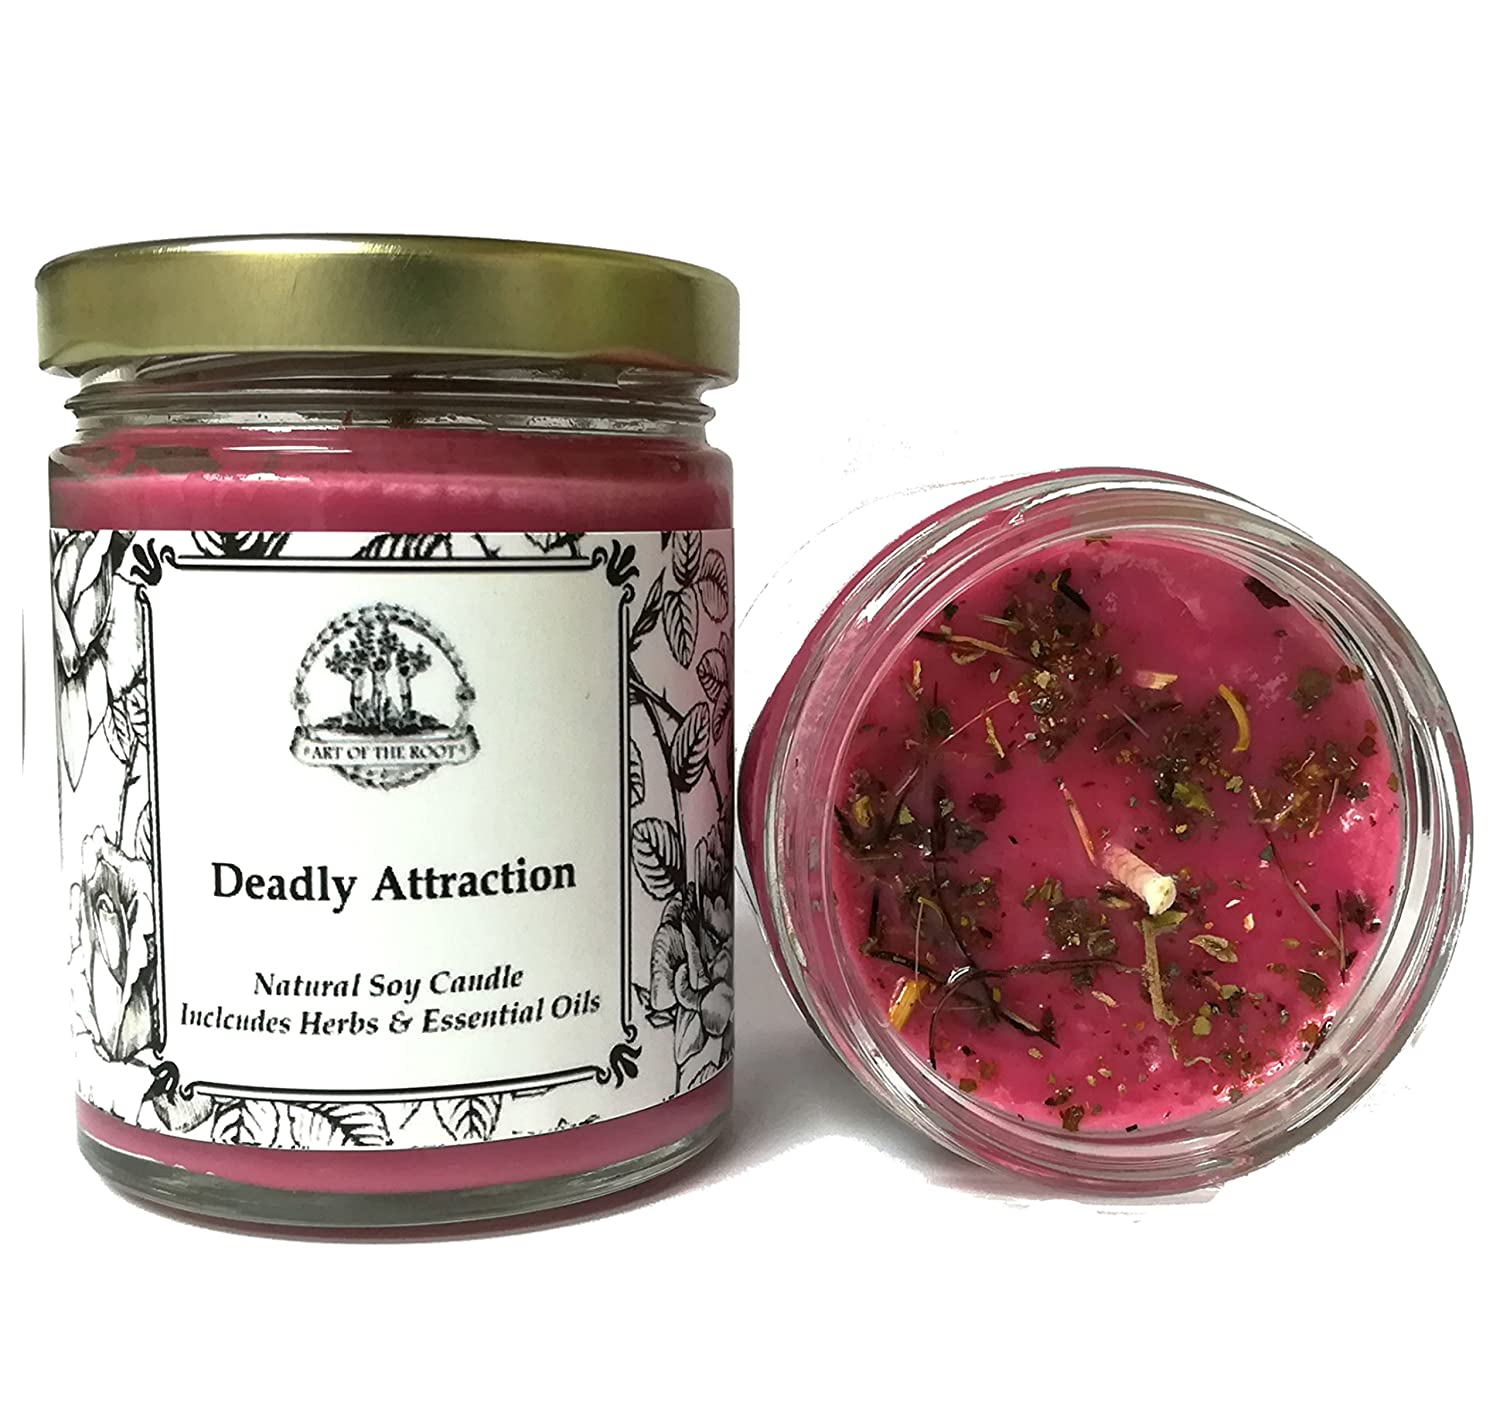 Deadly Attraction 8 oz Soy Herbal Spell Candle Seduction, Passion, Lust & Attraction Hoodoo Wiccan Pagan Conjure Art of the Root Ltd.